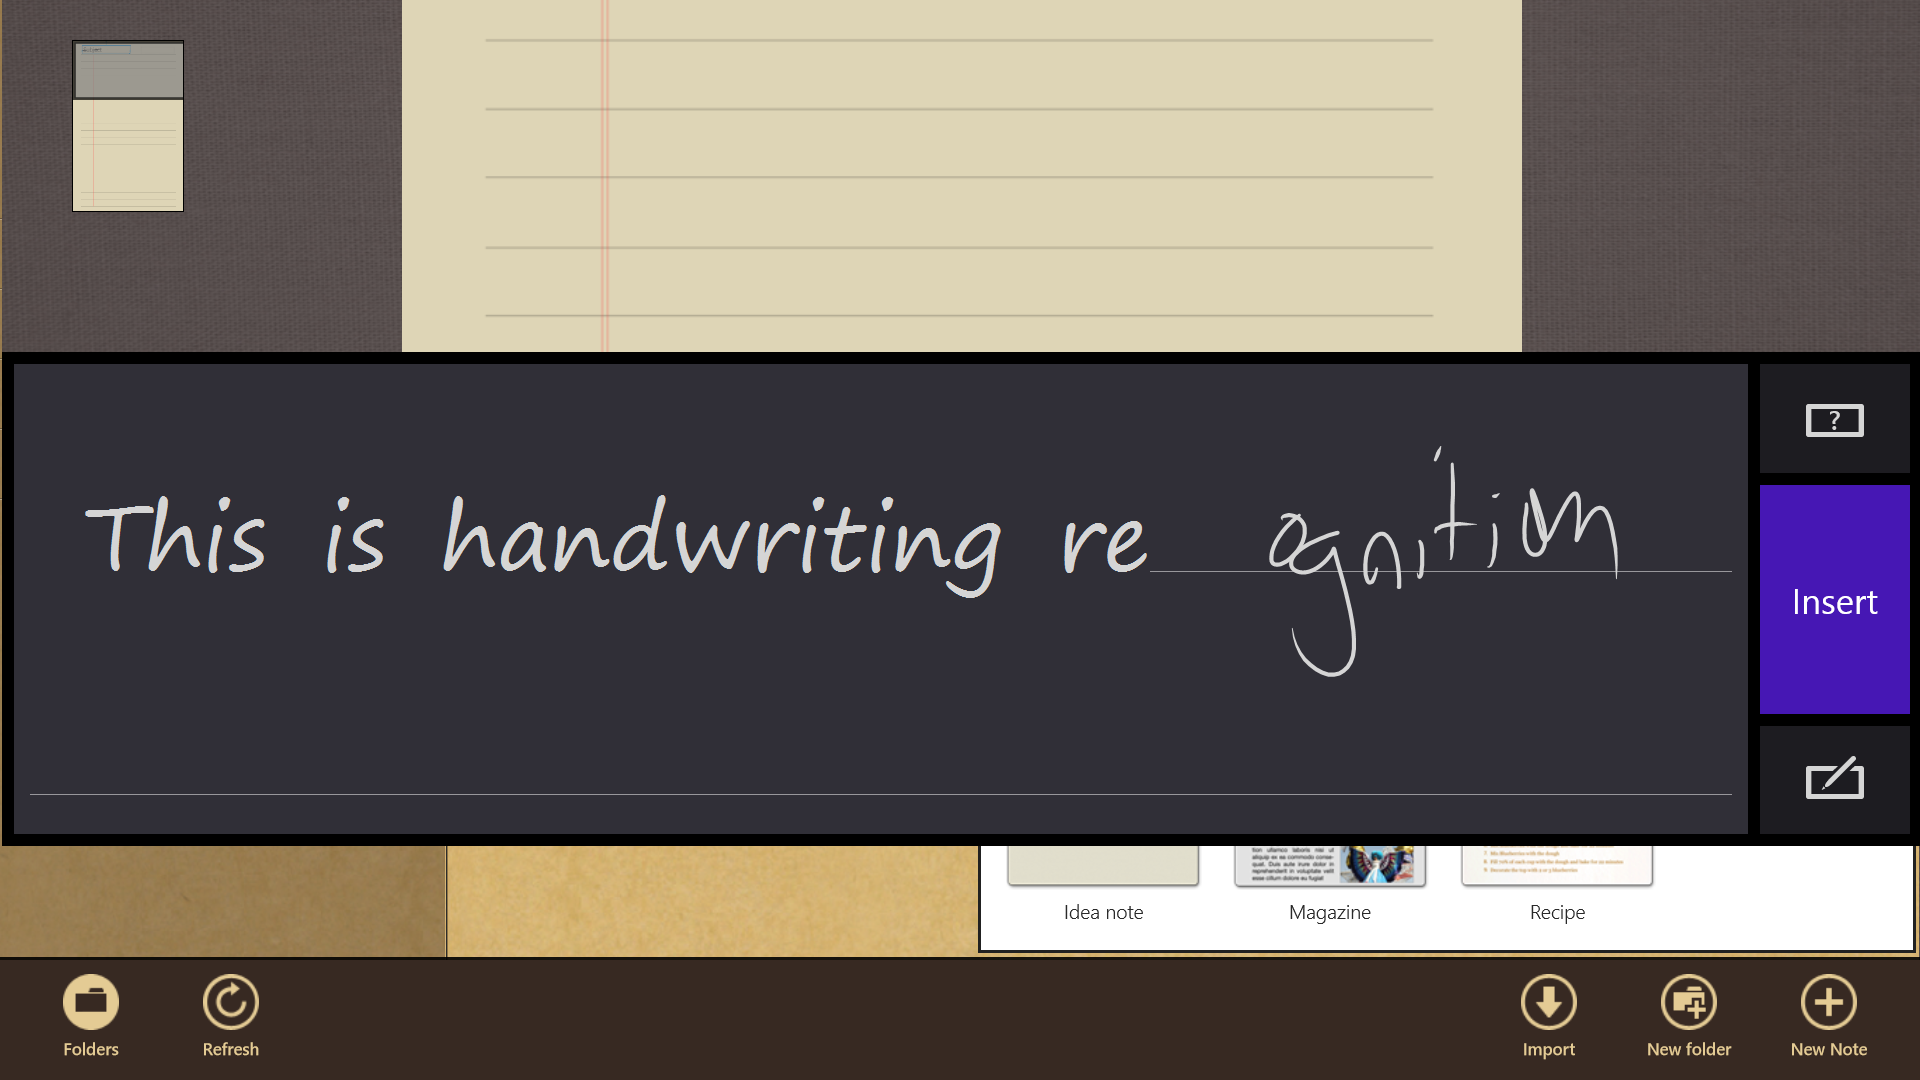 Handwriting recognition in the S Note app is good, even with my scrawl—but that's more a function of Windows 8 than the app itself.